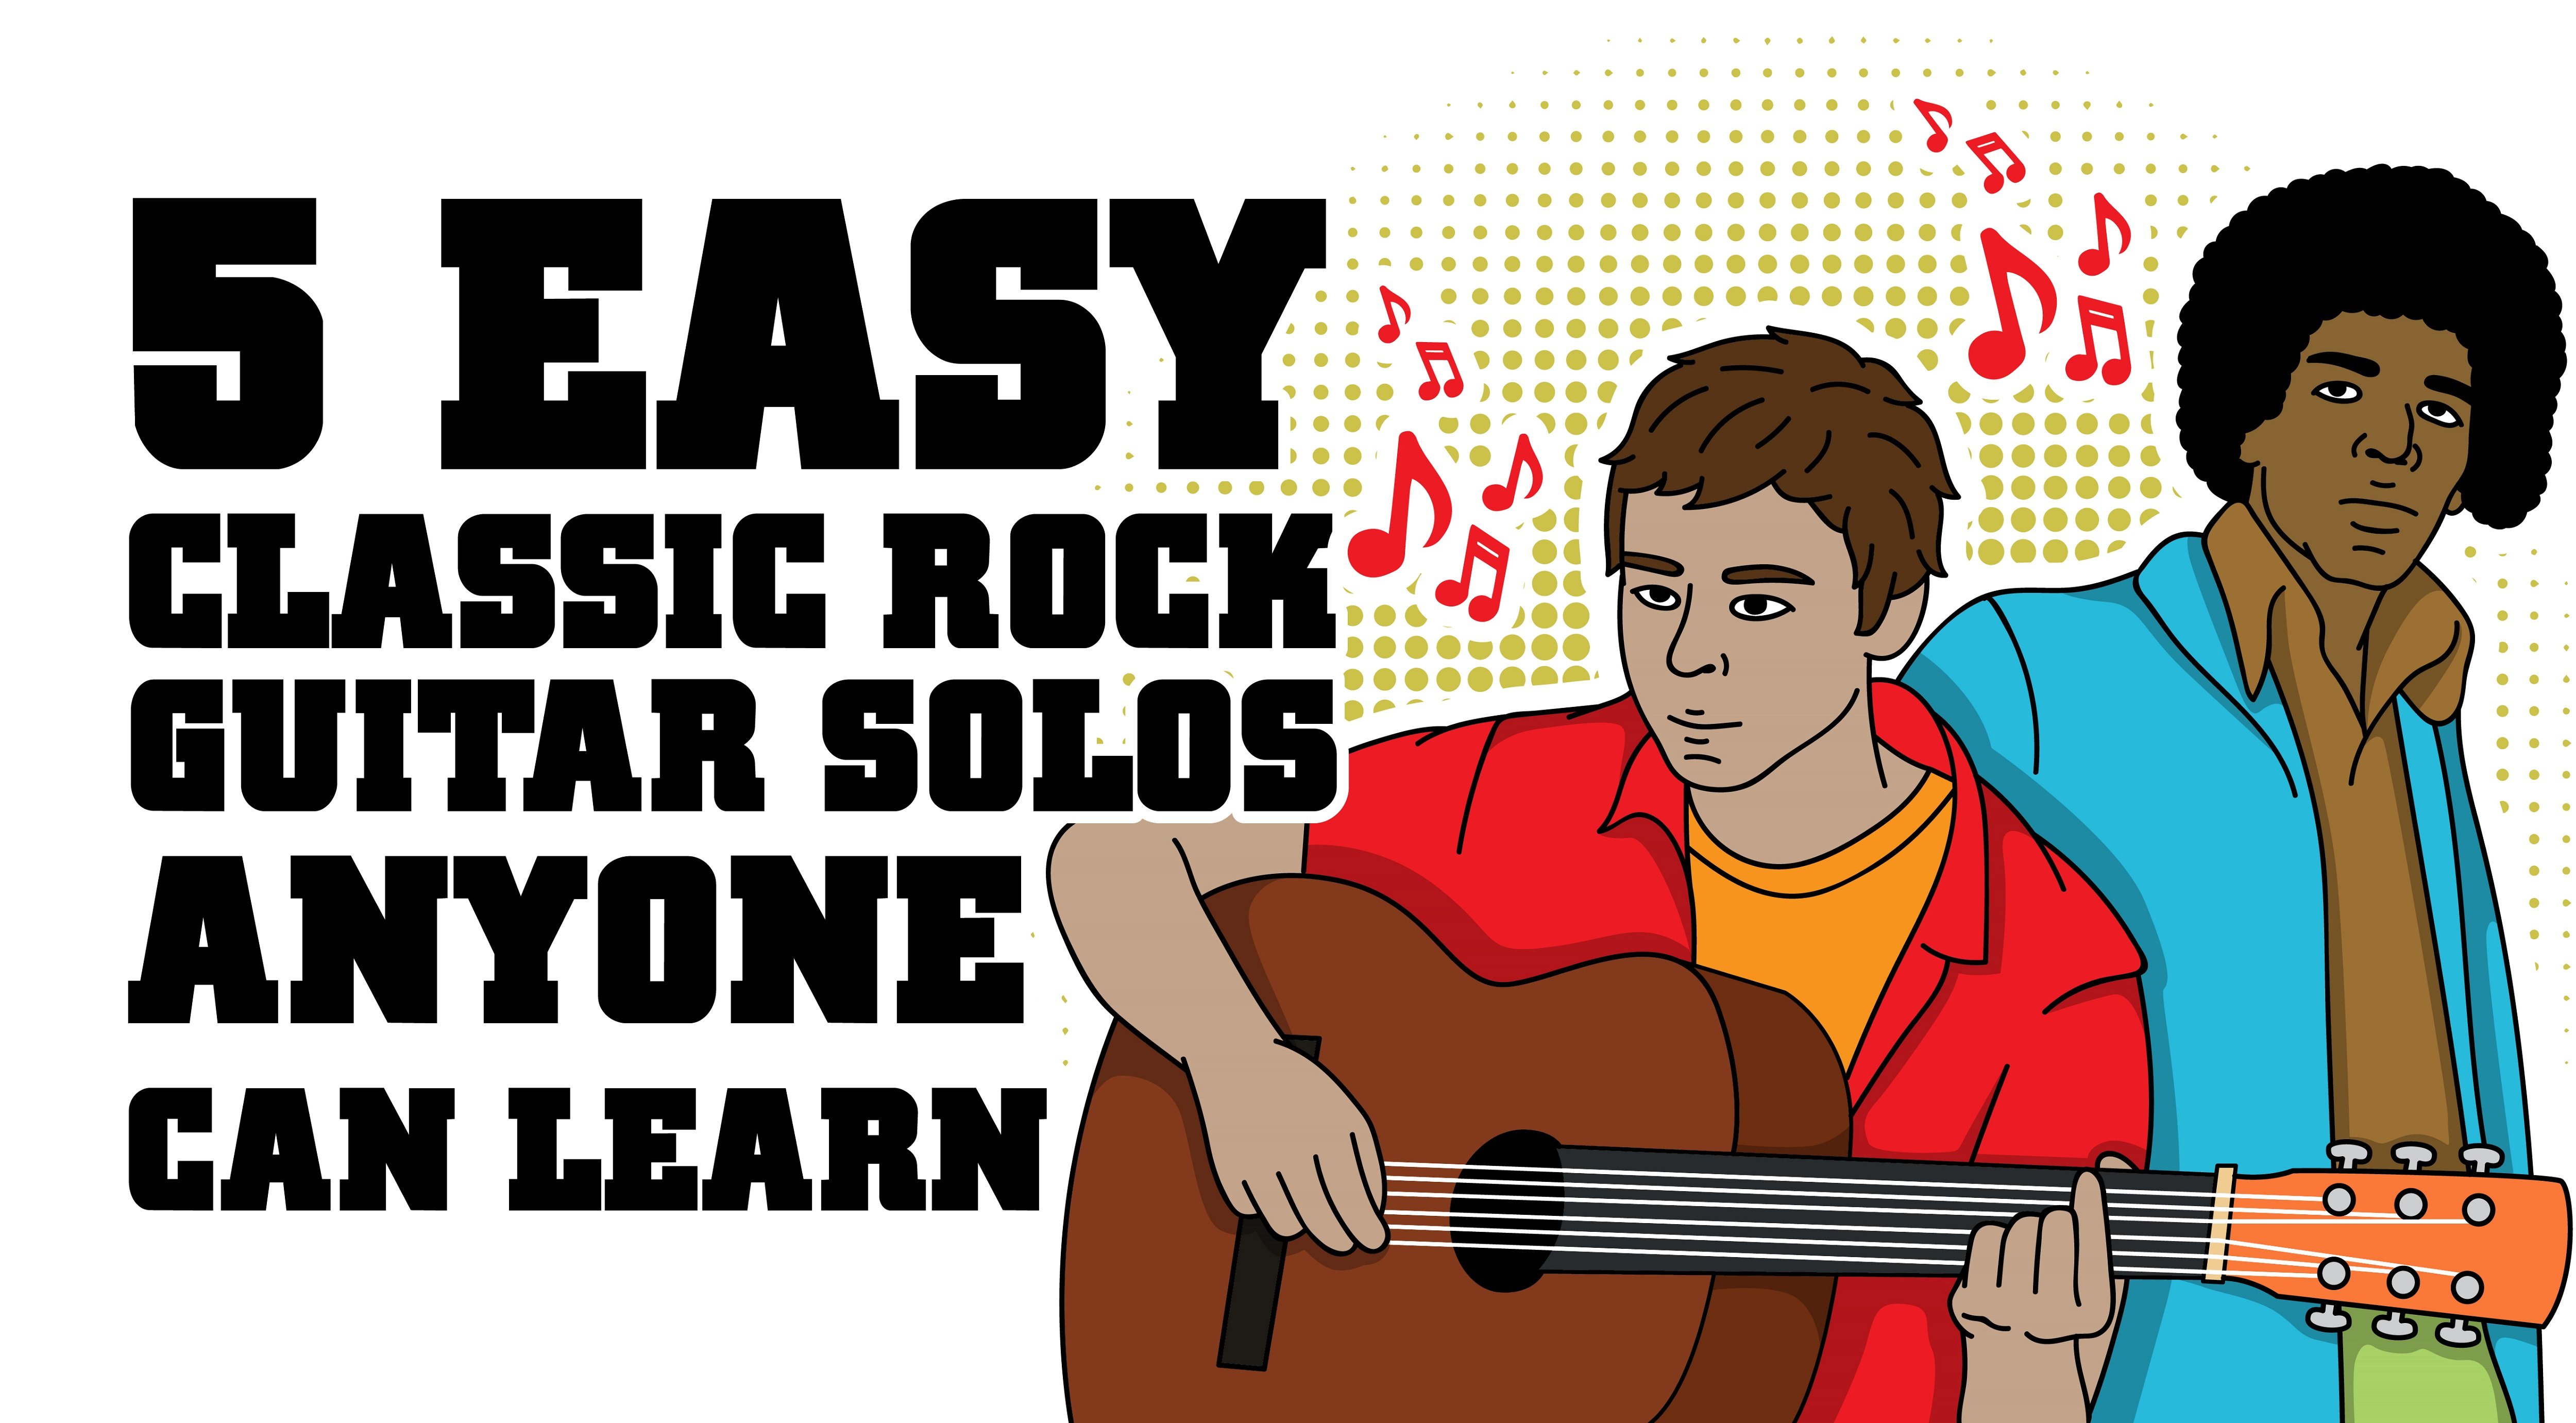 5 Easy Classic Rock Guitar Solos Anyone Can Learn I Love Classic Rock